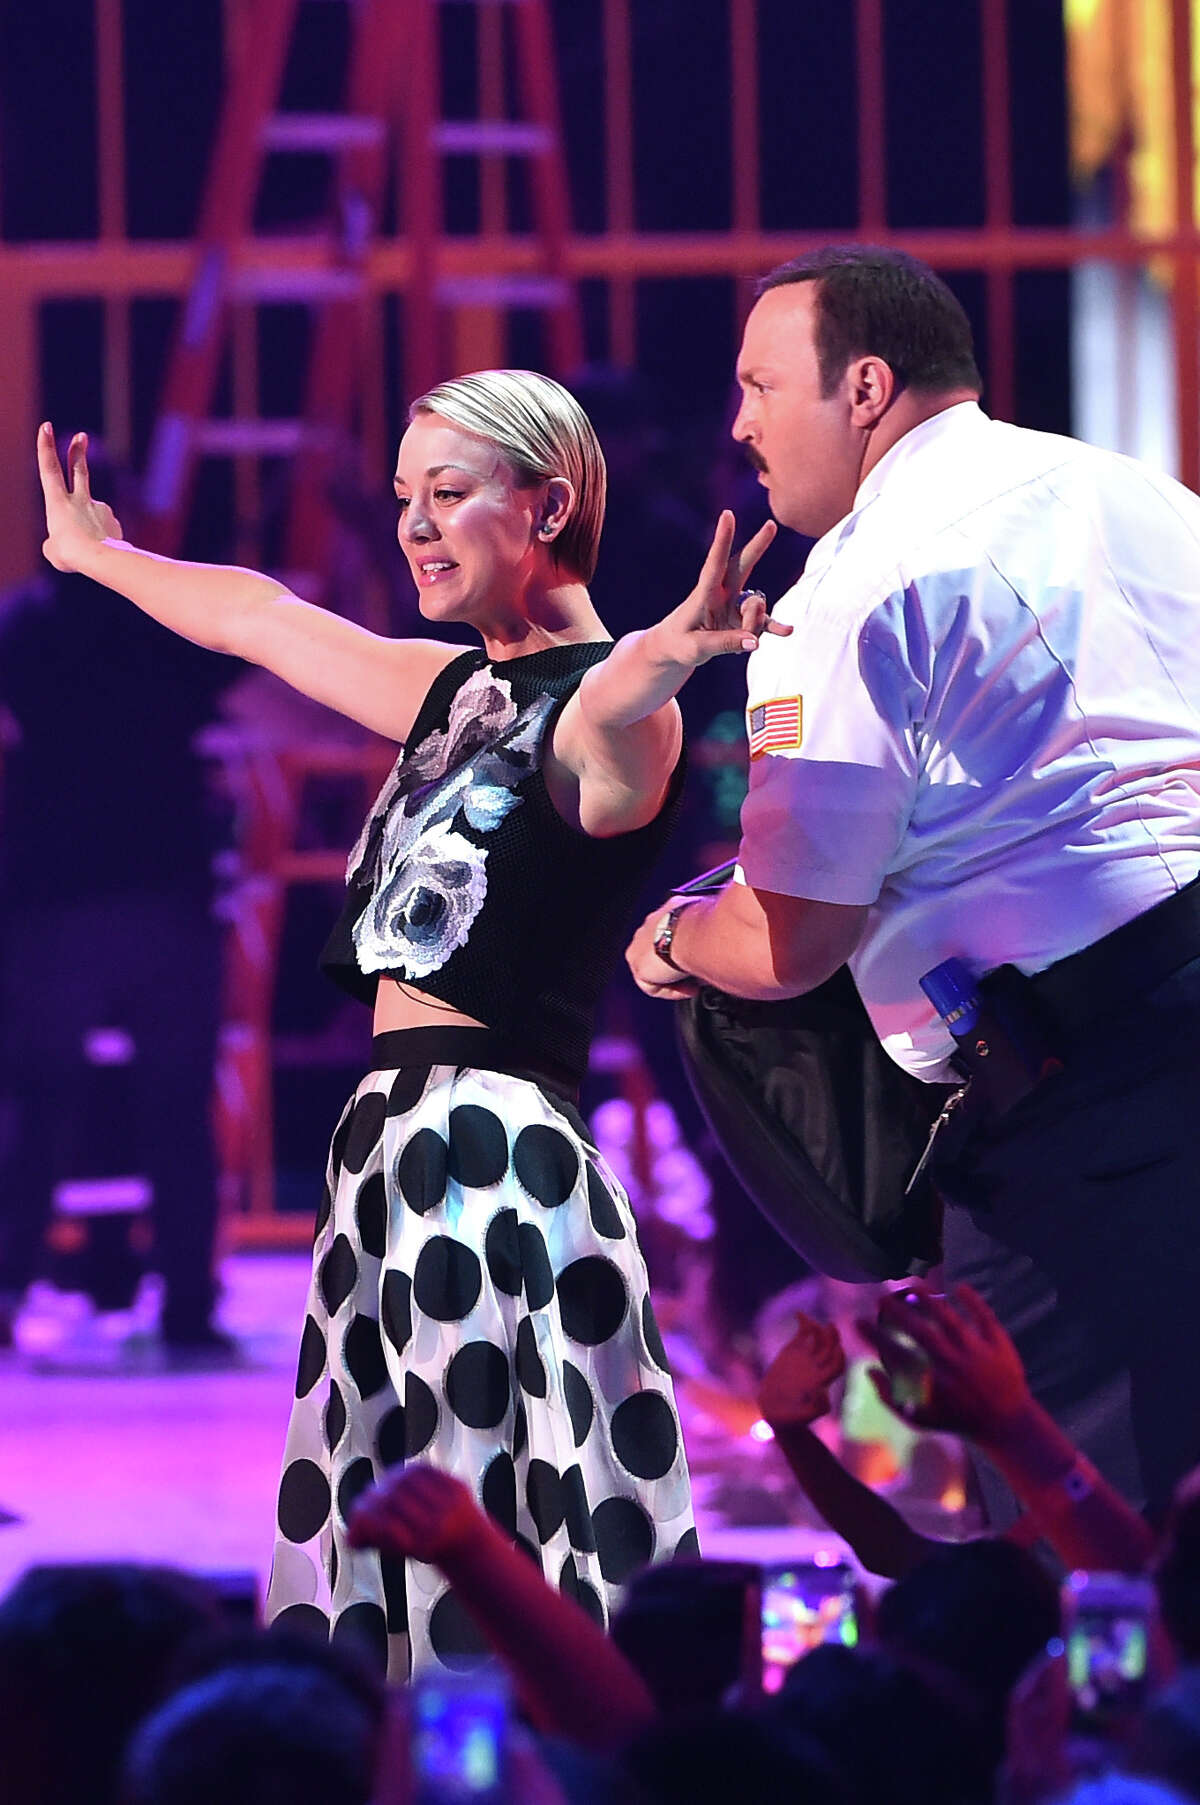 INGLEWOOD, CA - MARCH 28: Actors Kevin James (R) and Kaley Cuoco speak onstage during Nickelodeon's 28th Annual Kids' Choice Awards held at The Forum on March 28, 2015 in Inglewood, California.